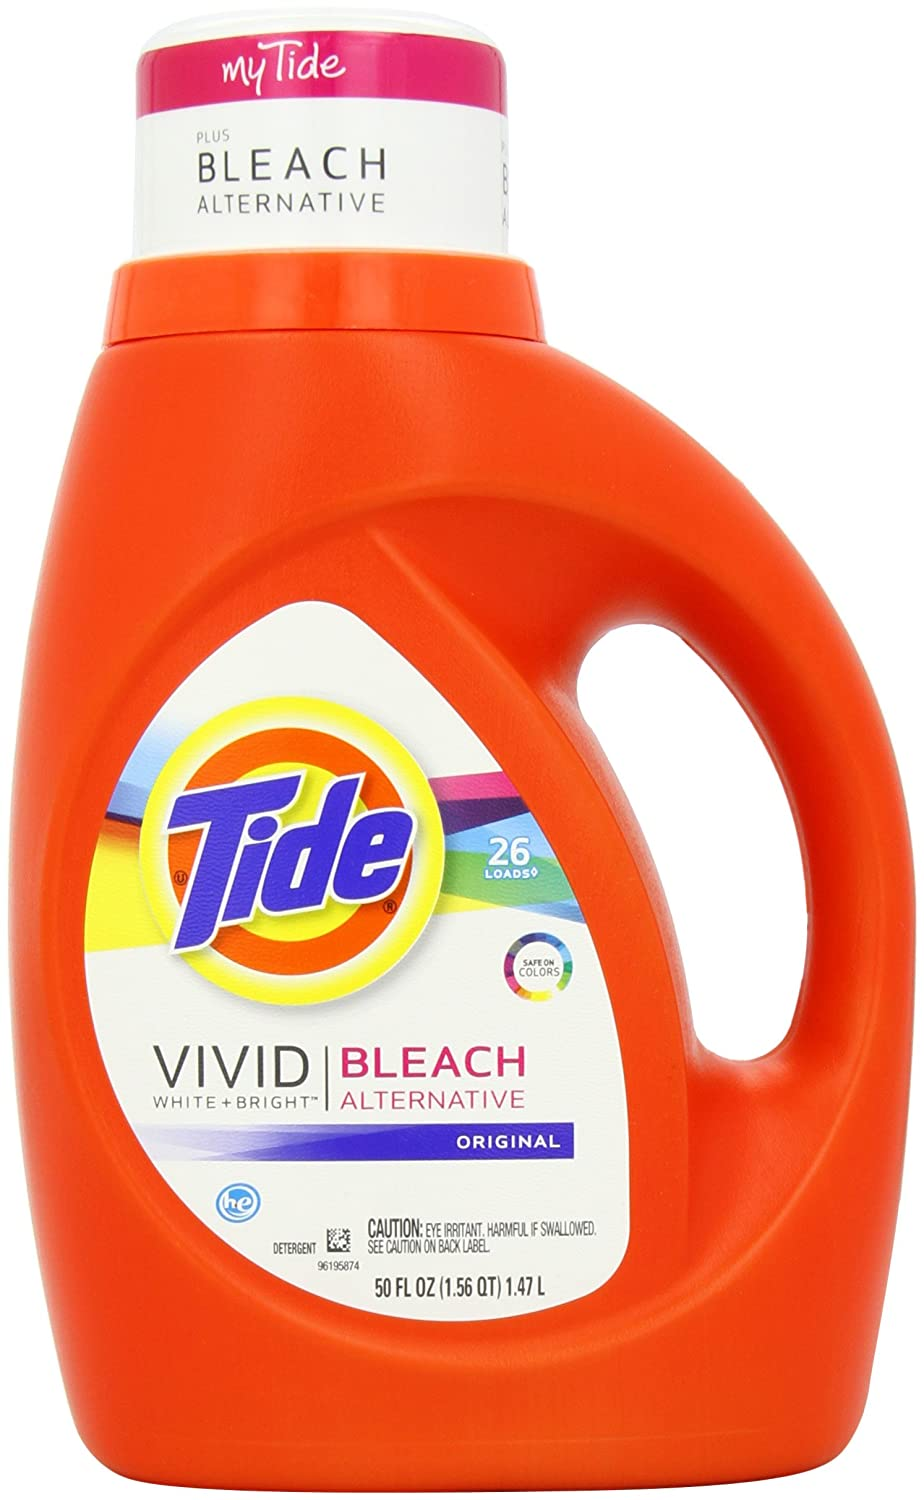 Tide Vivid White + Bright HE Original Scent Liquid Laundry Detergent 26 Loads 50 Fl Oz (Pack of 2) $12.00